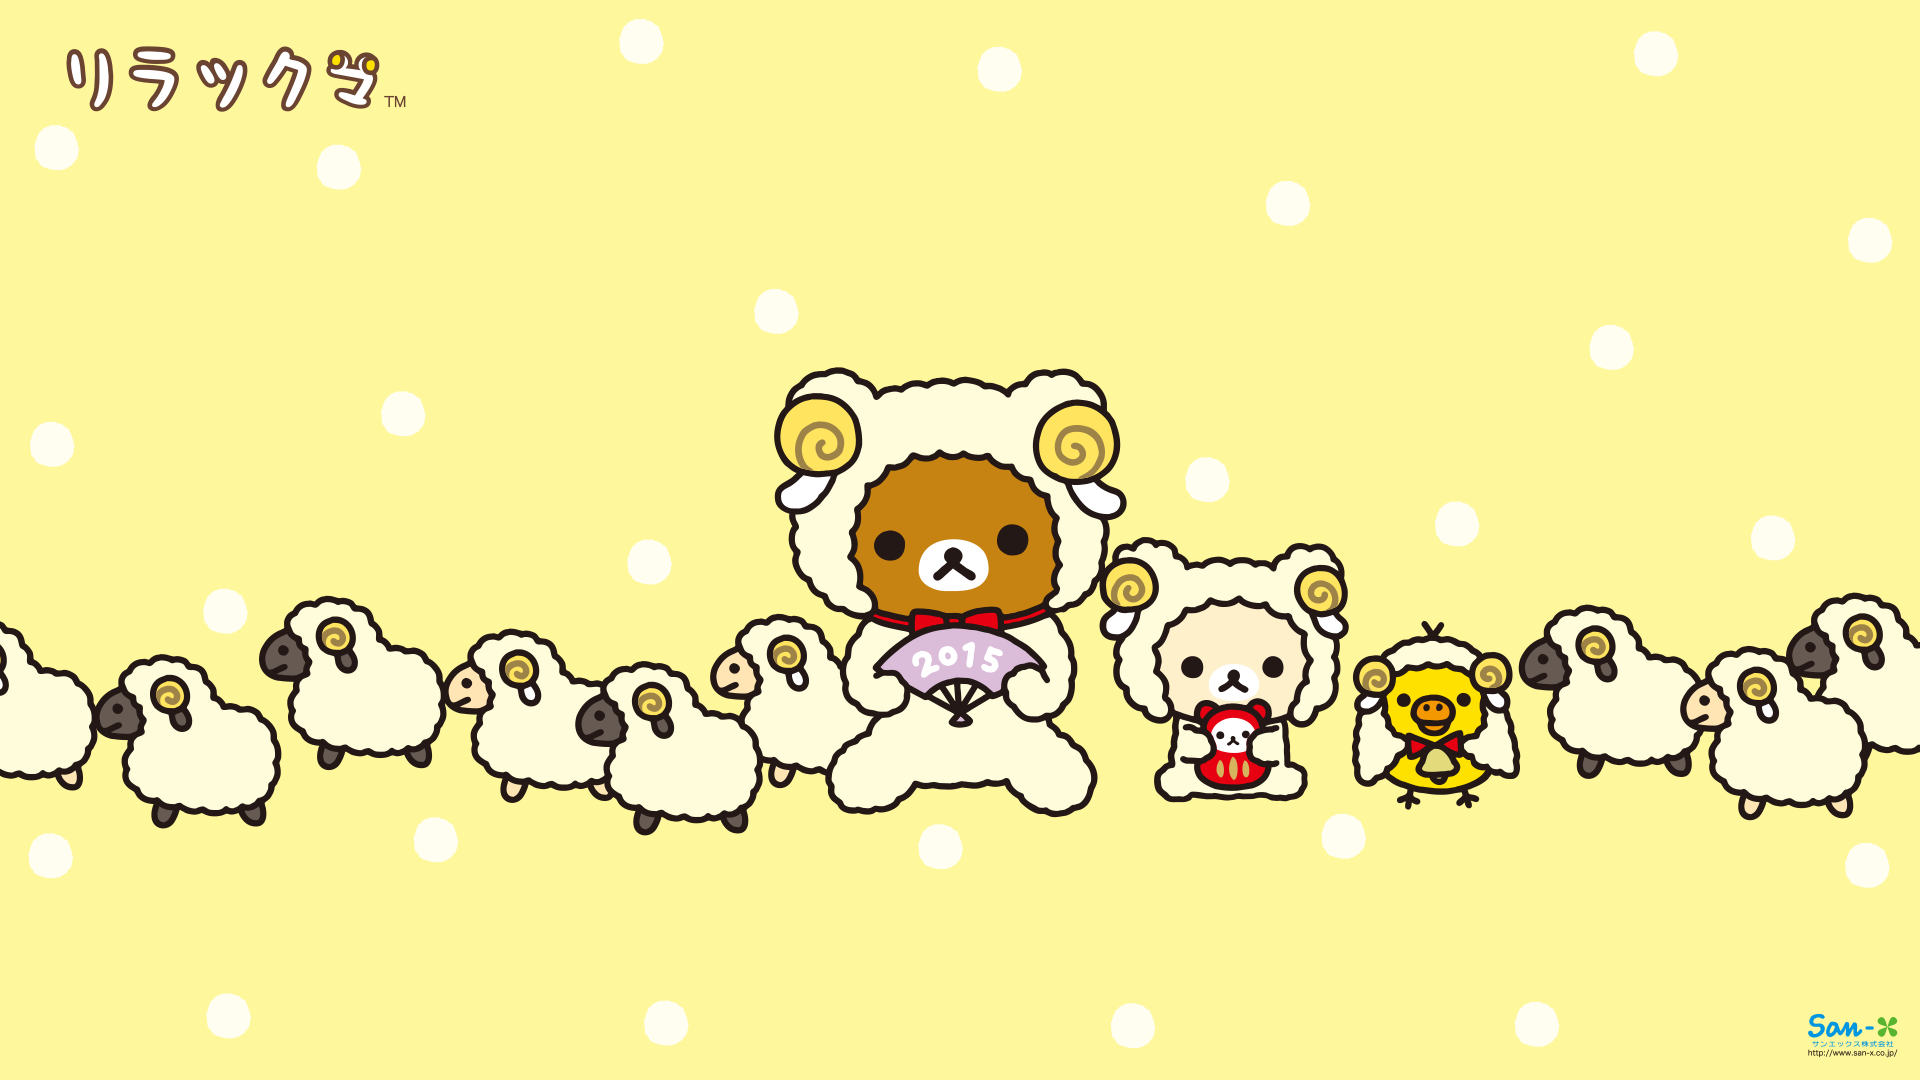 rilakkuma wallpaper january - photo #20